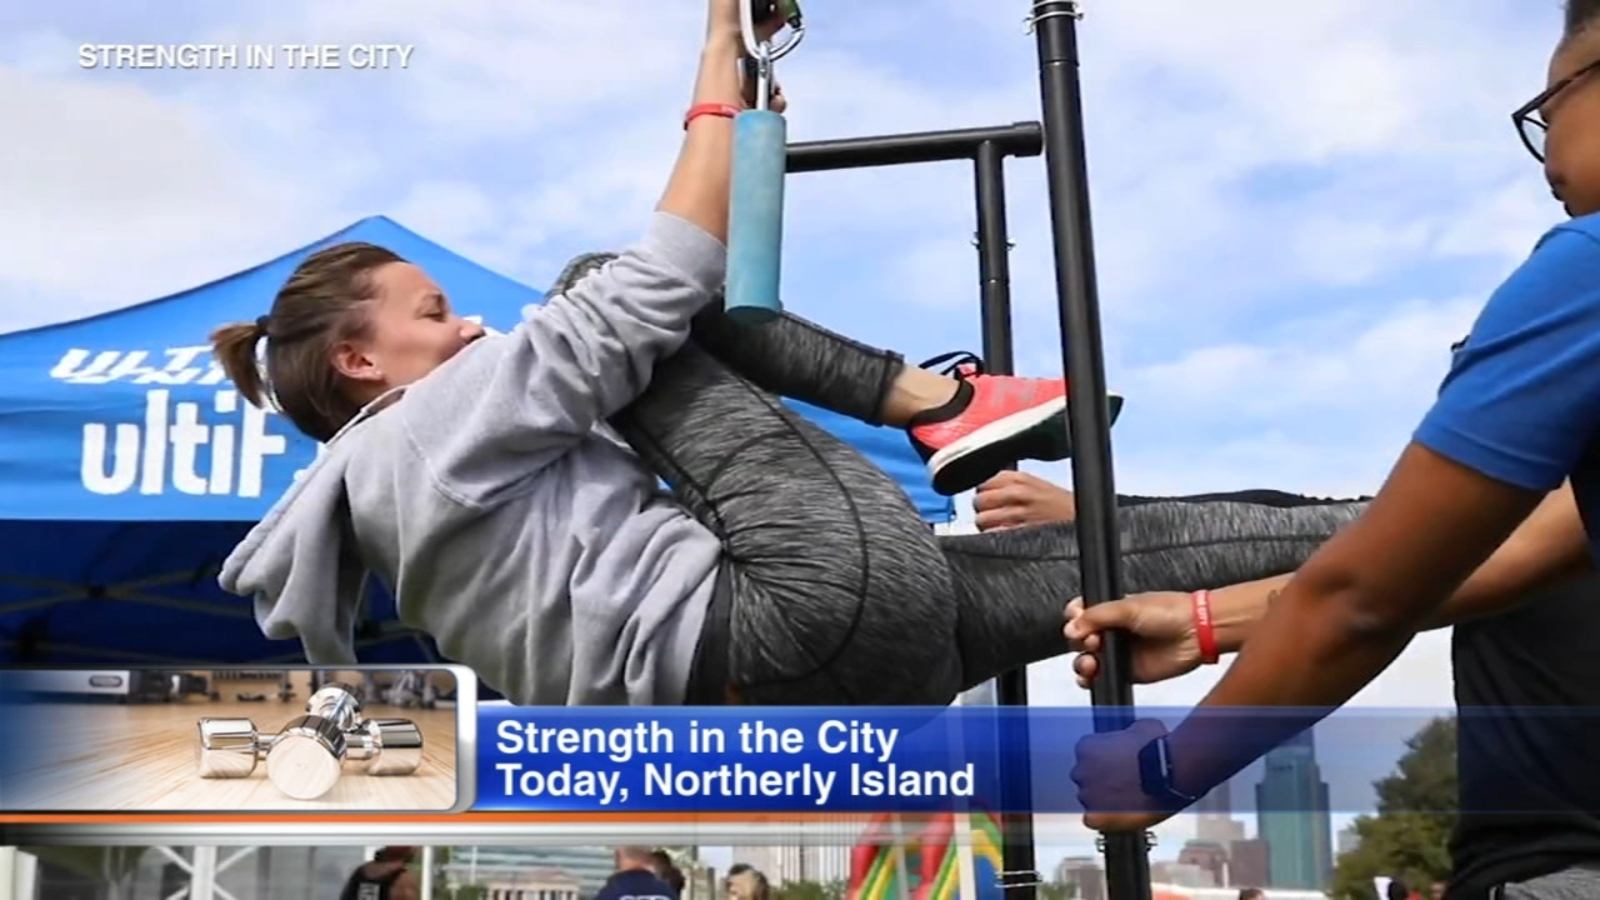 Strength in the City Fitness Festival comes to Northerly Island